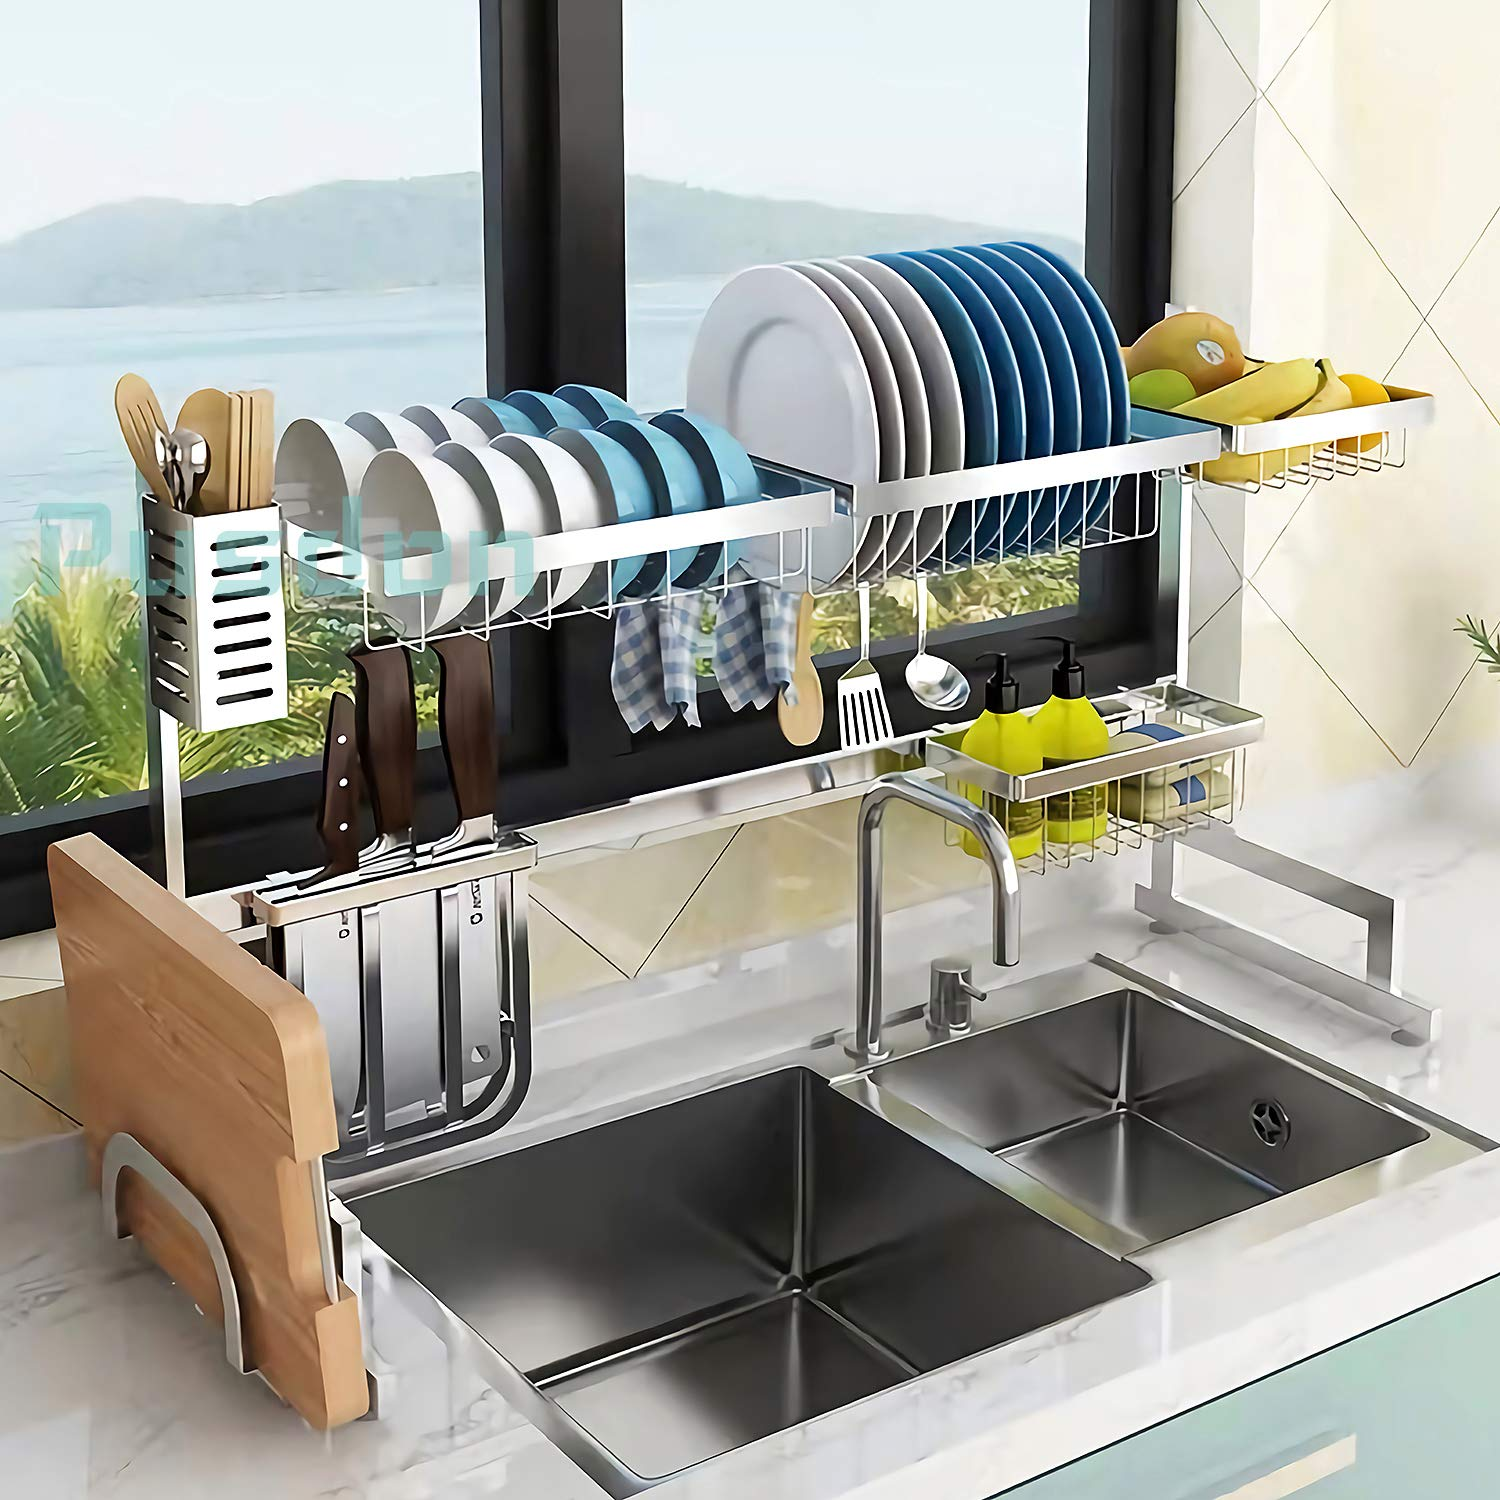 "Over Sink(32"") Dish Drying Rack"